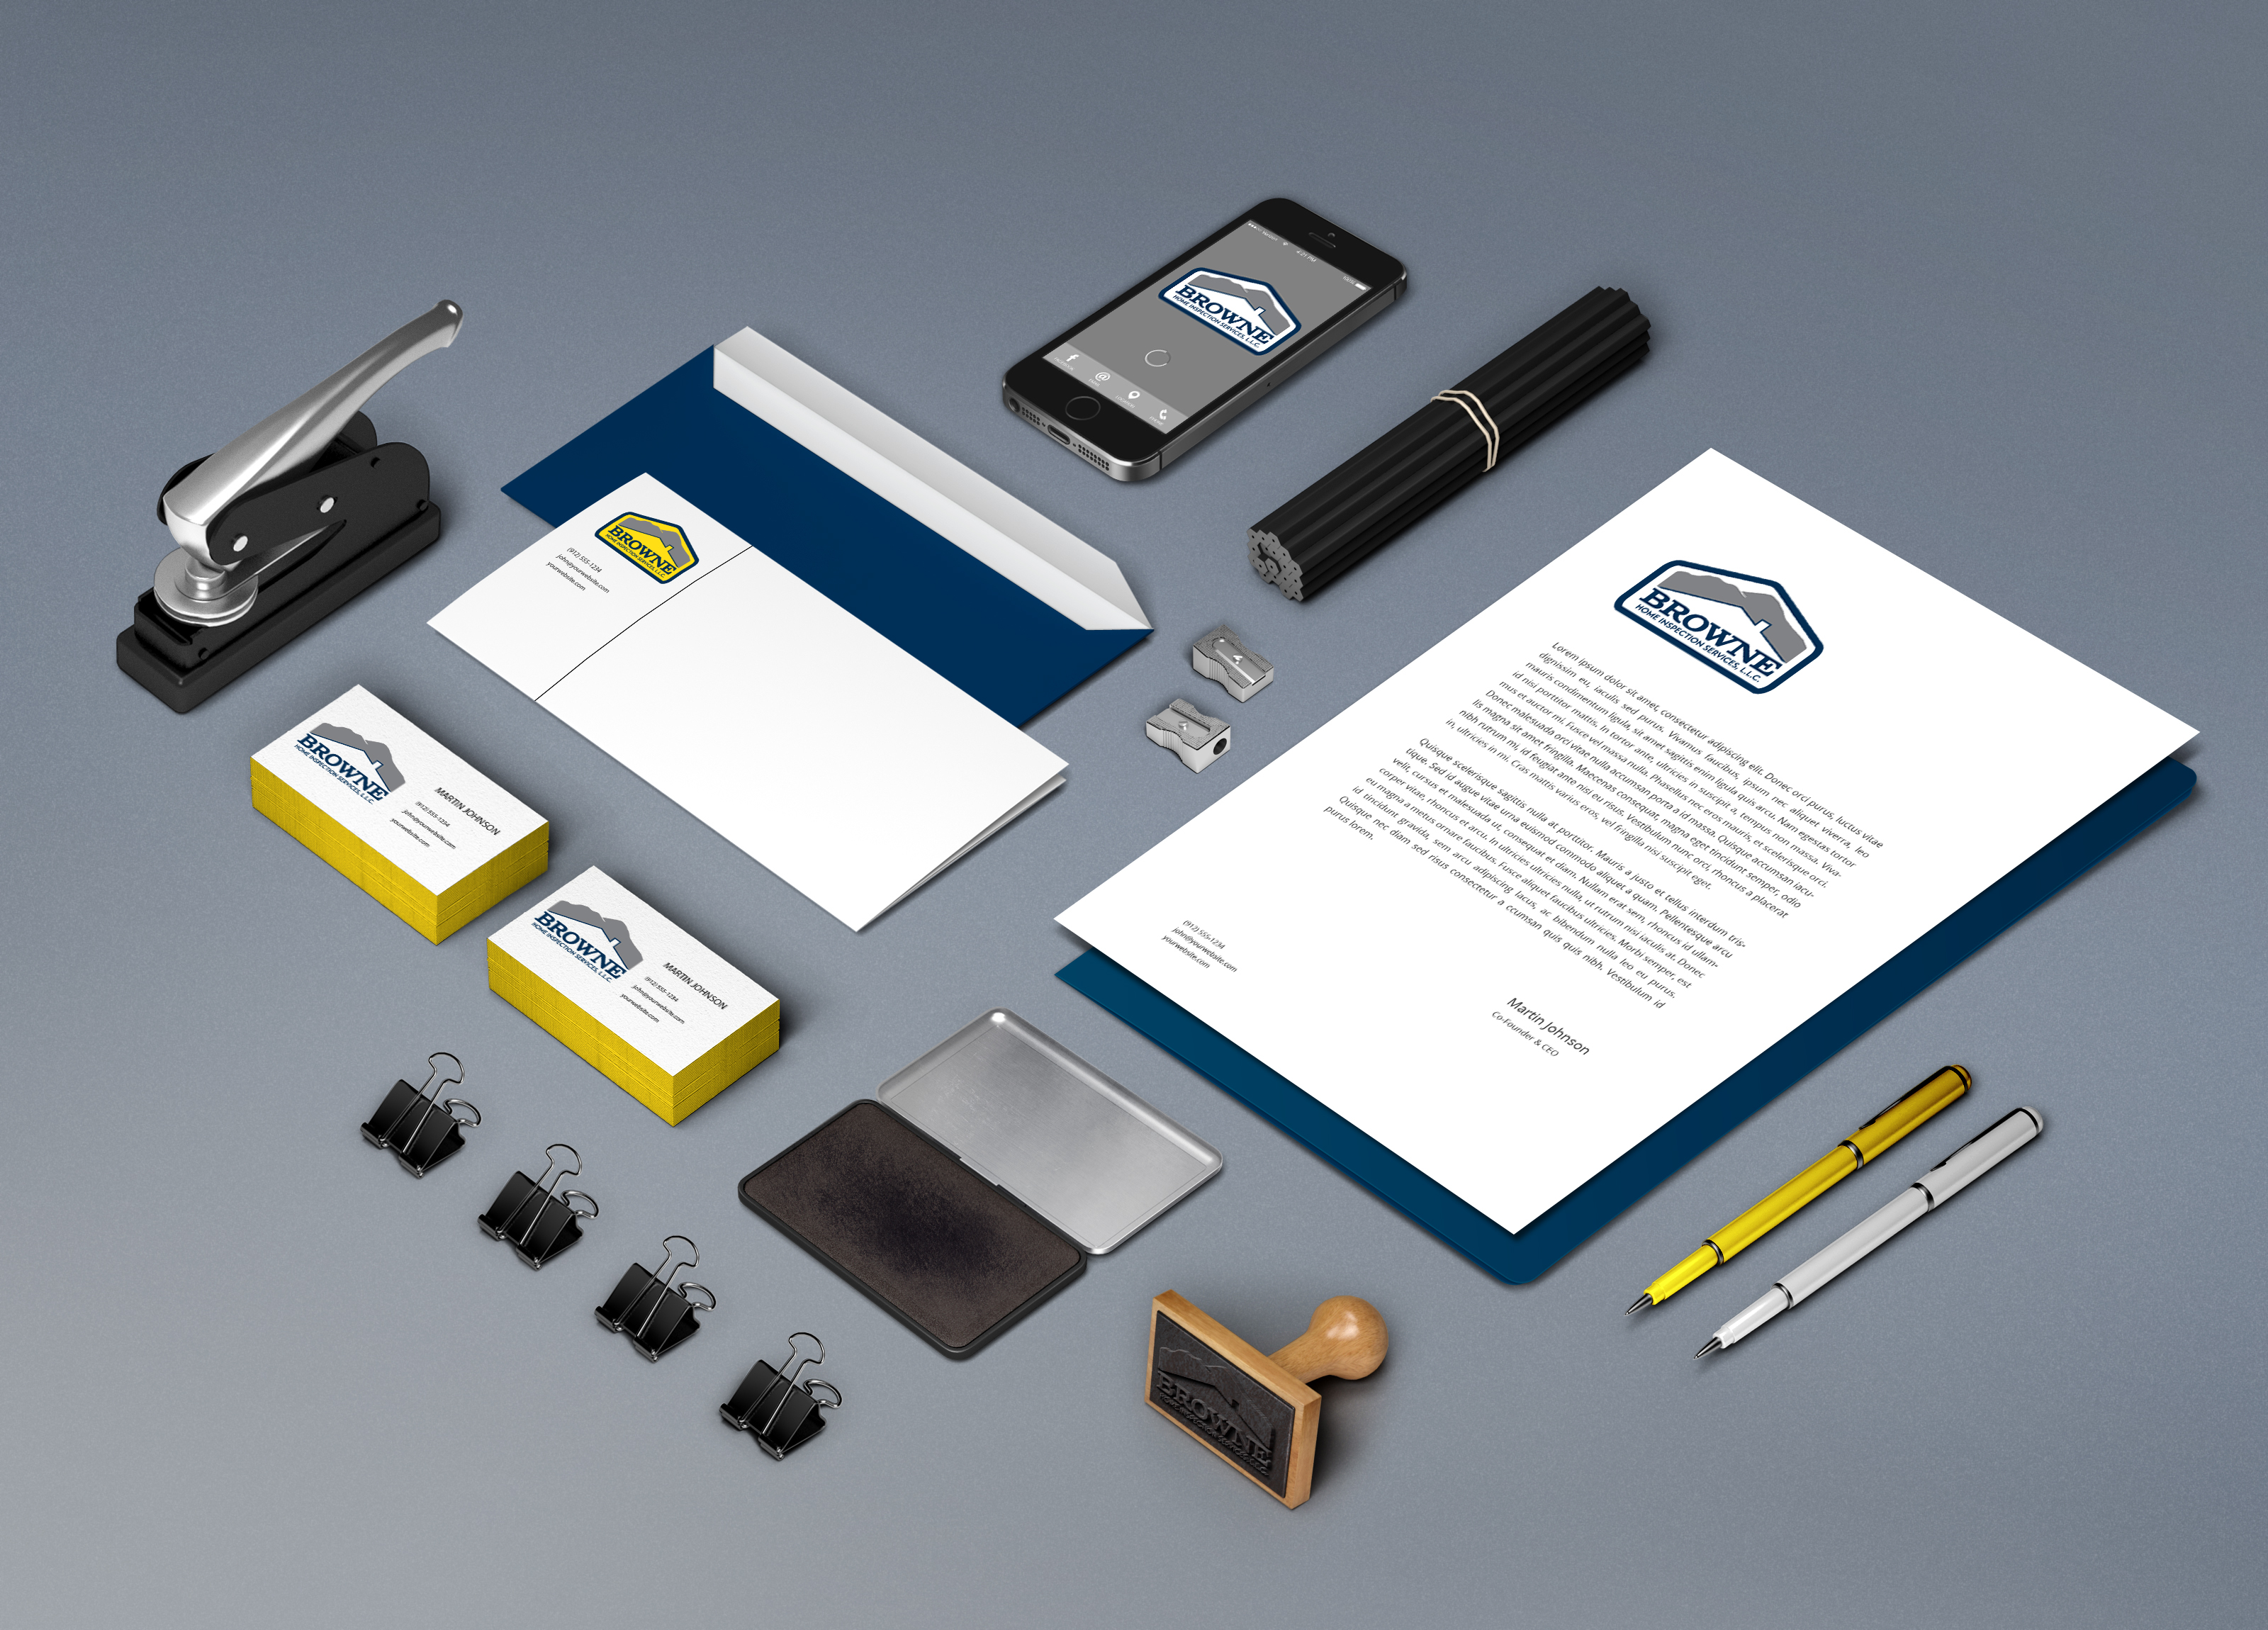 creative rust design branding design for browne home inspection services